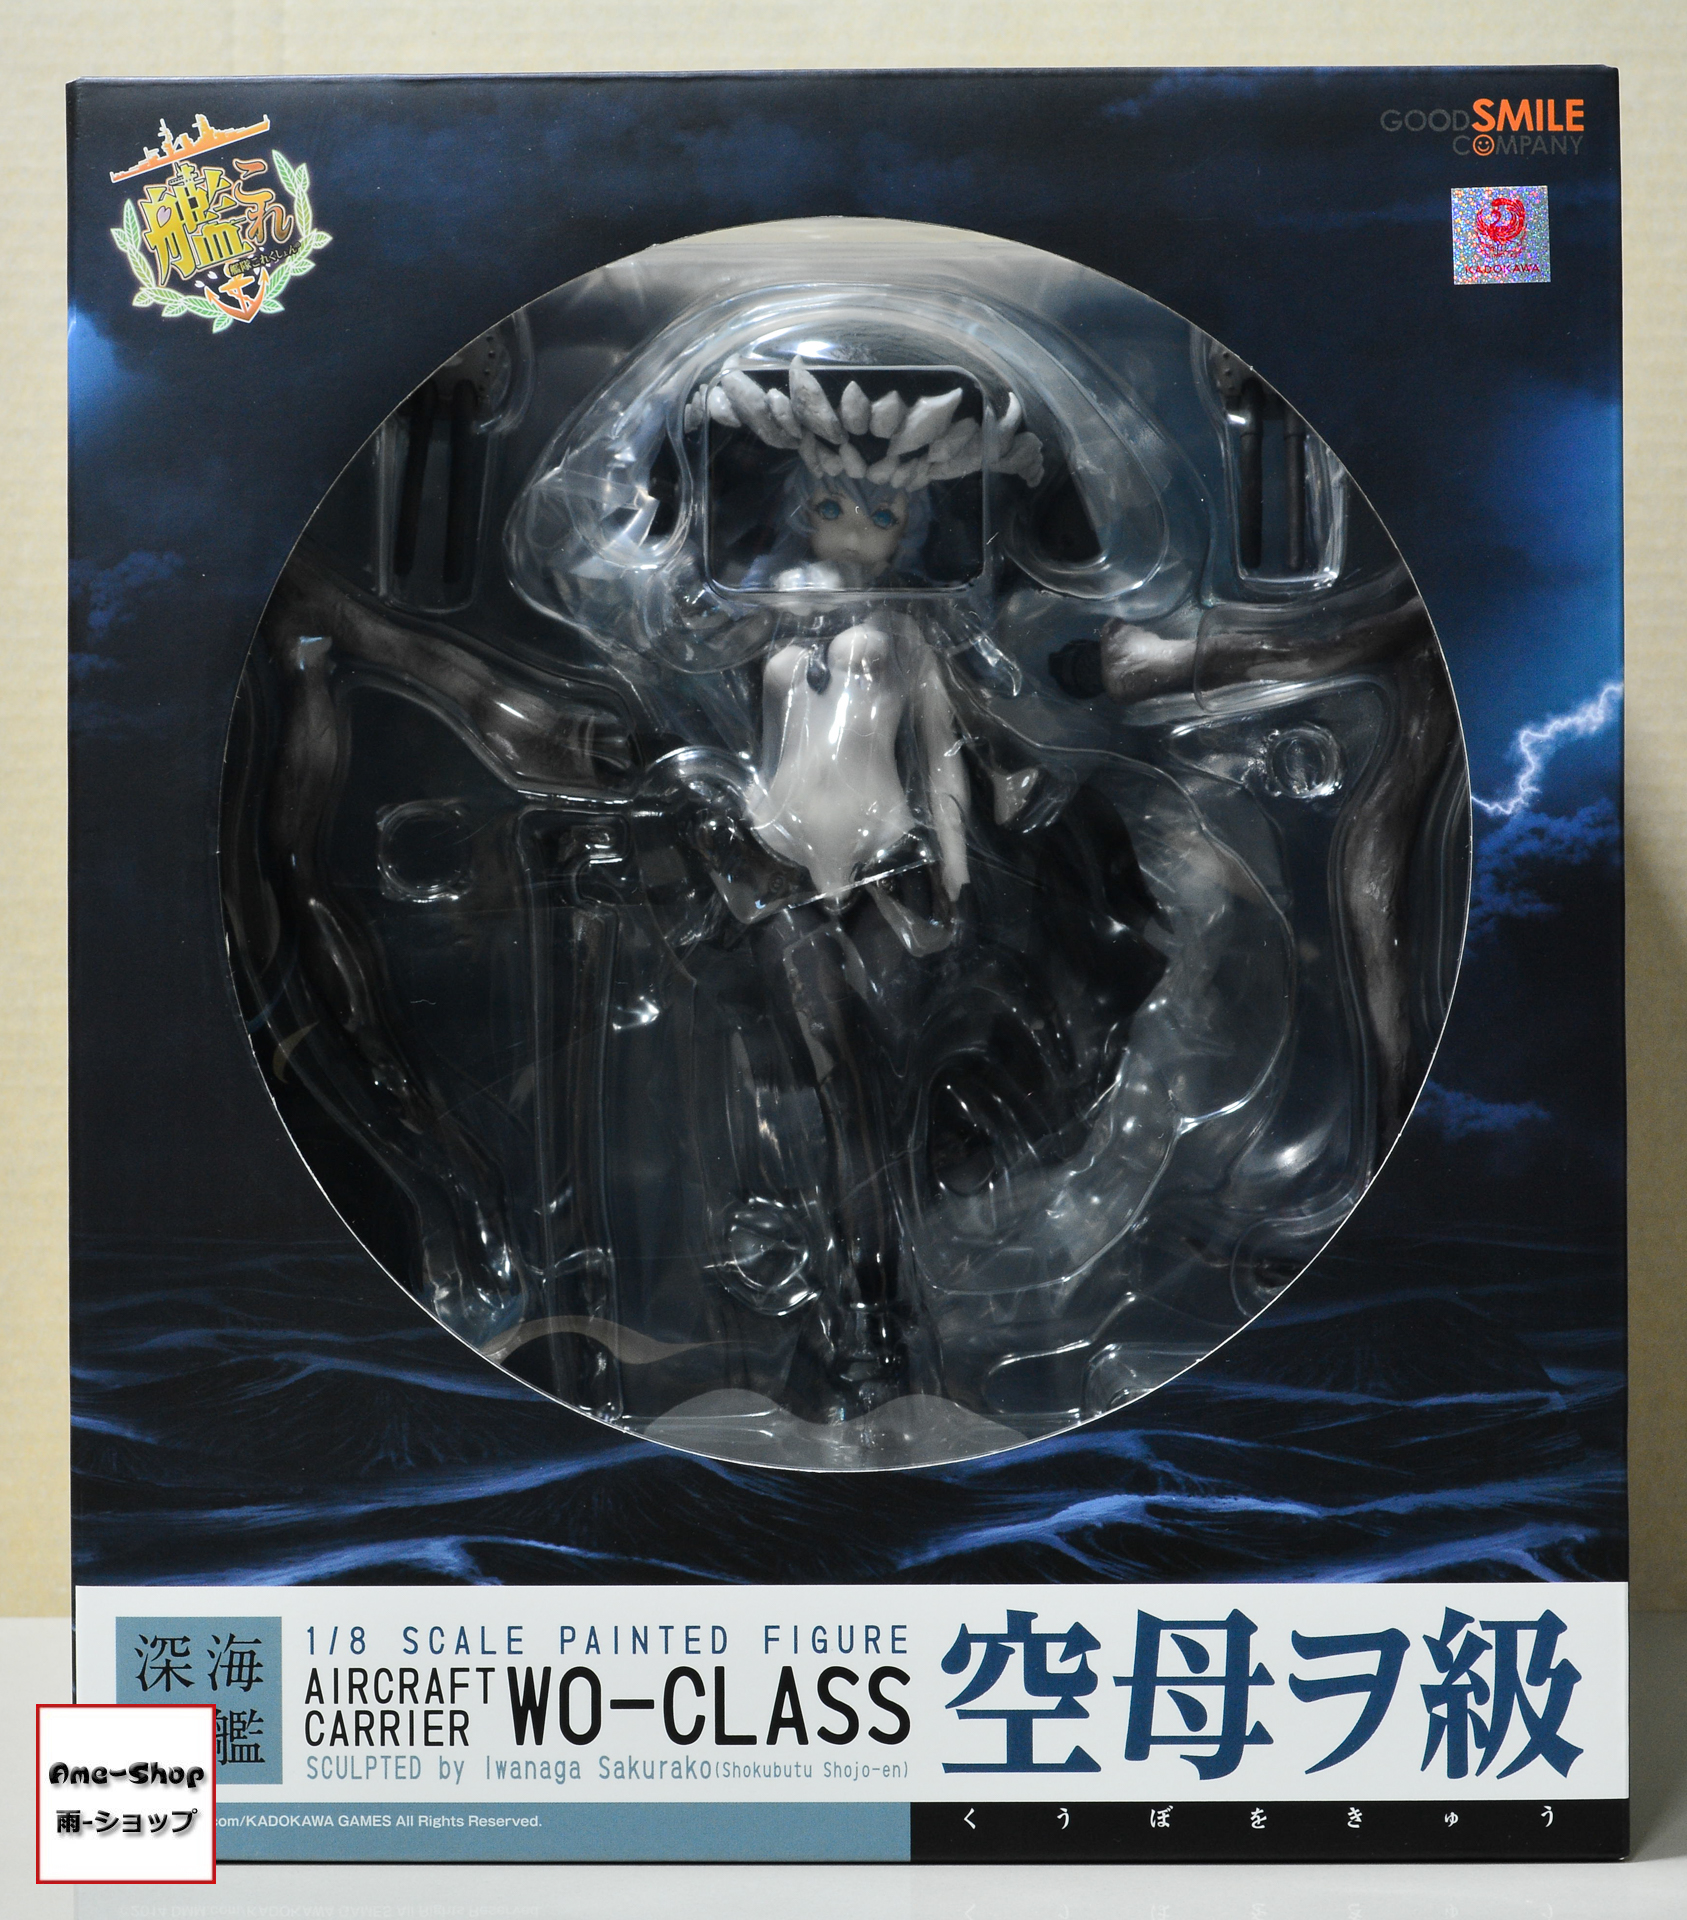 Kantai Collection -Kan Colle- Aircraft Carrier Wo-class 1/8 Complete Figure (In-stock)